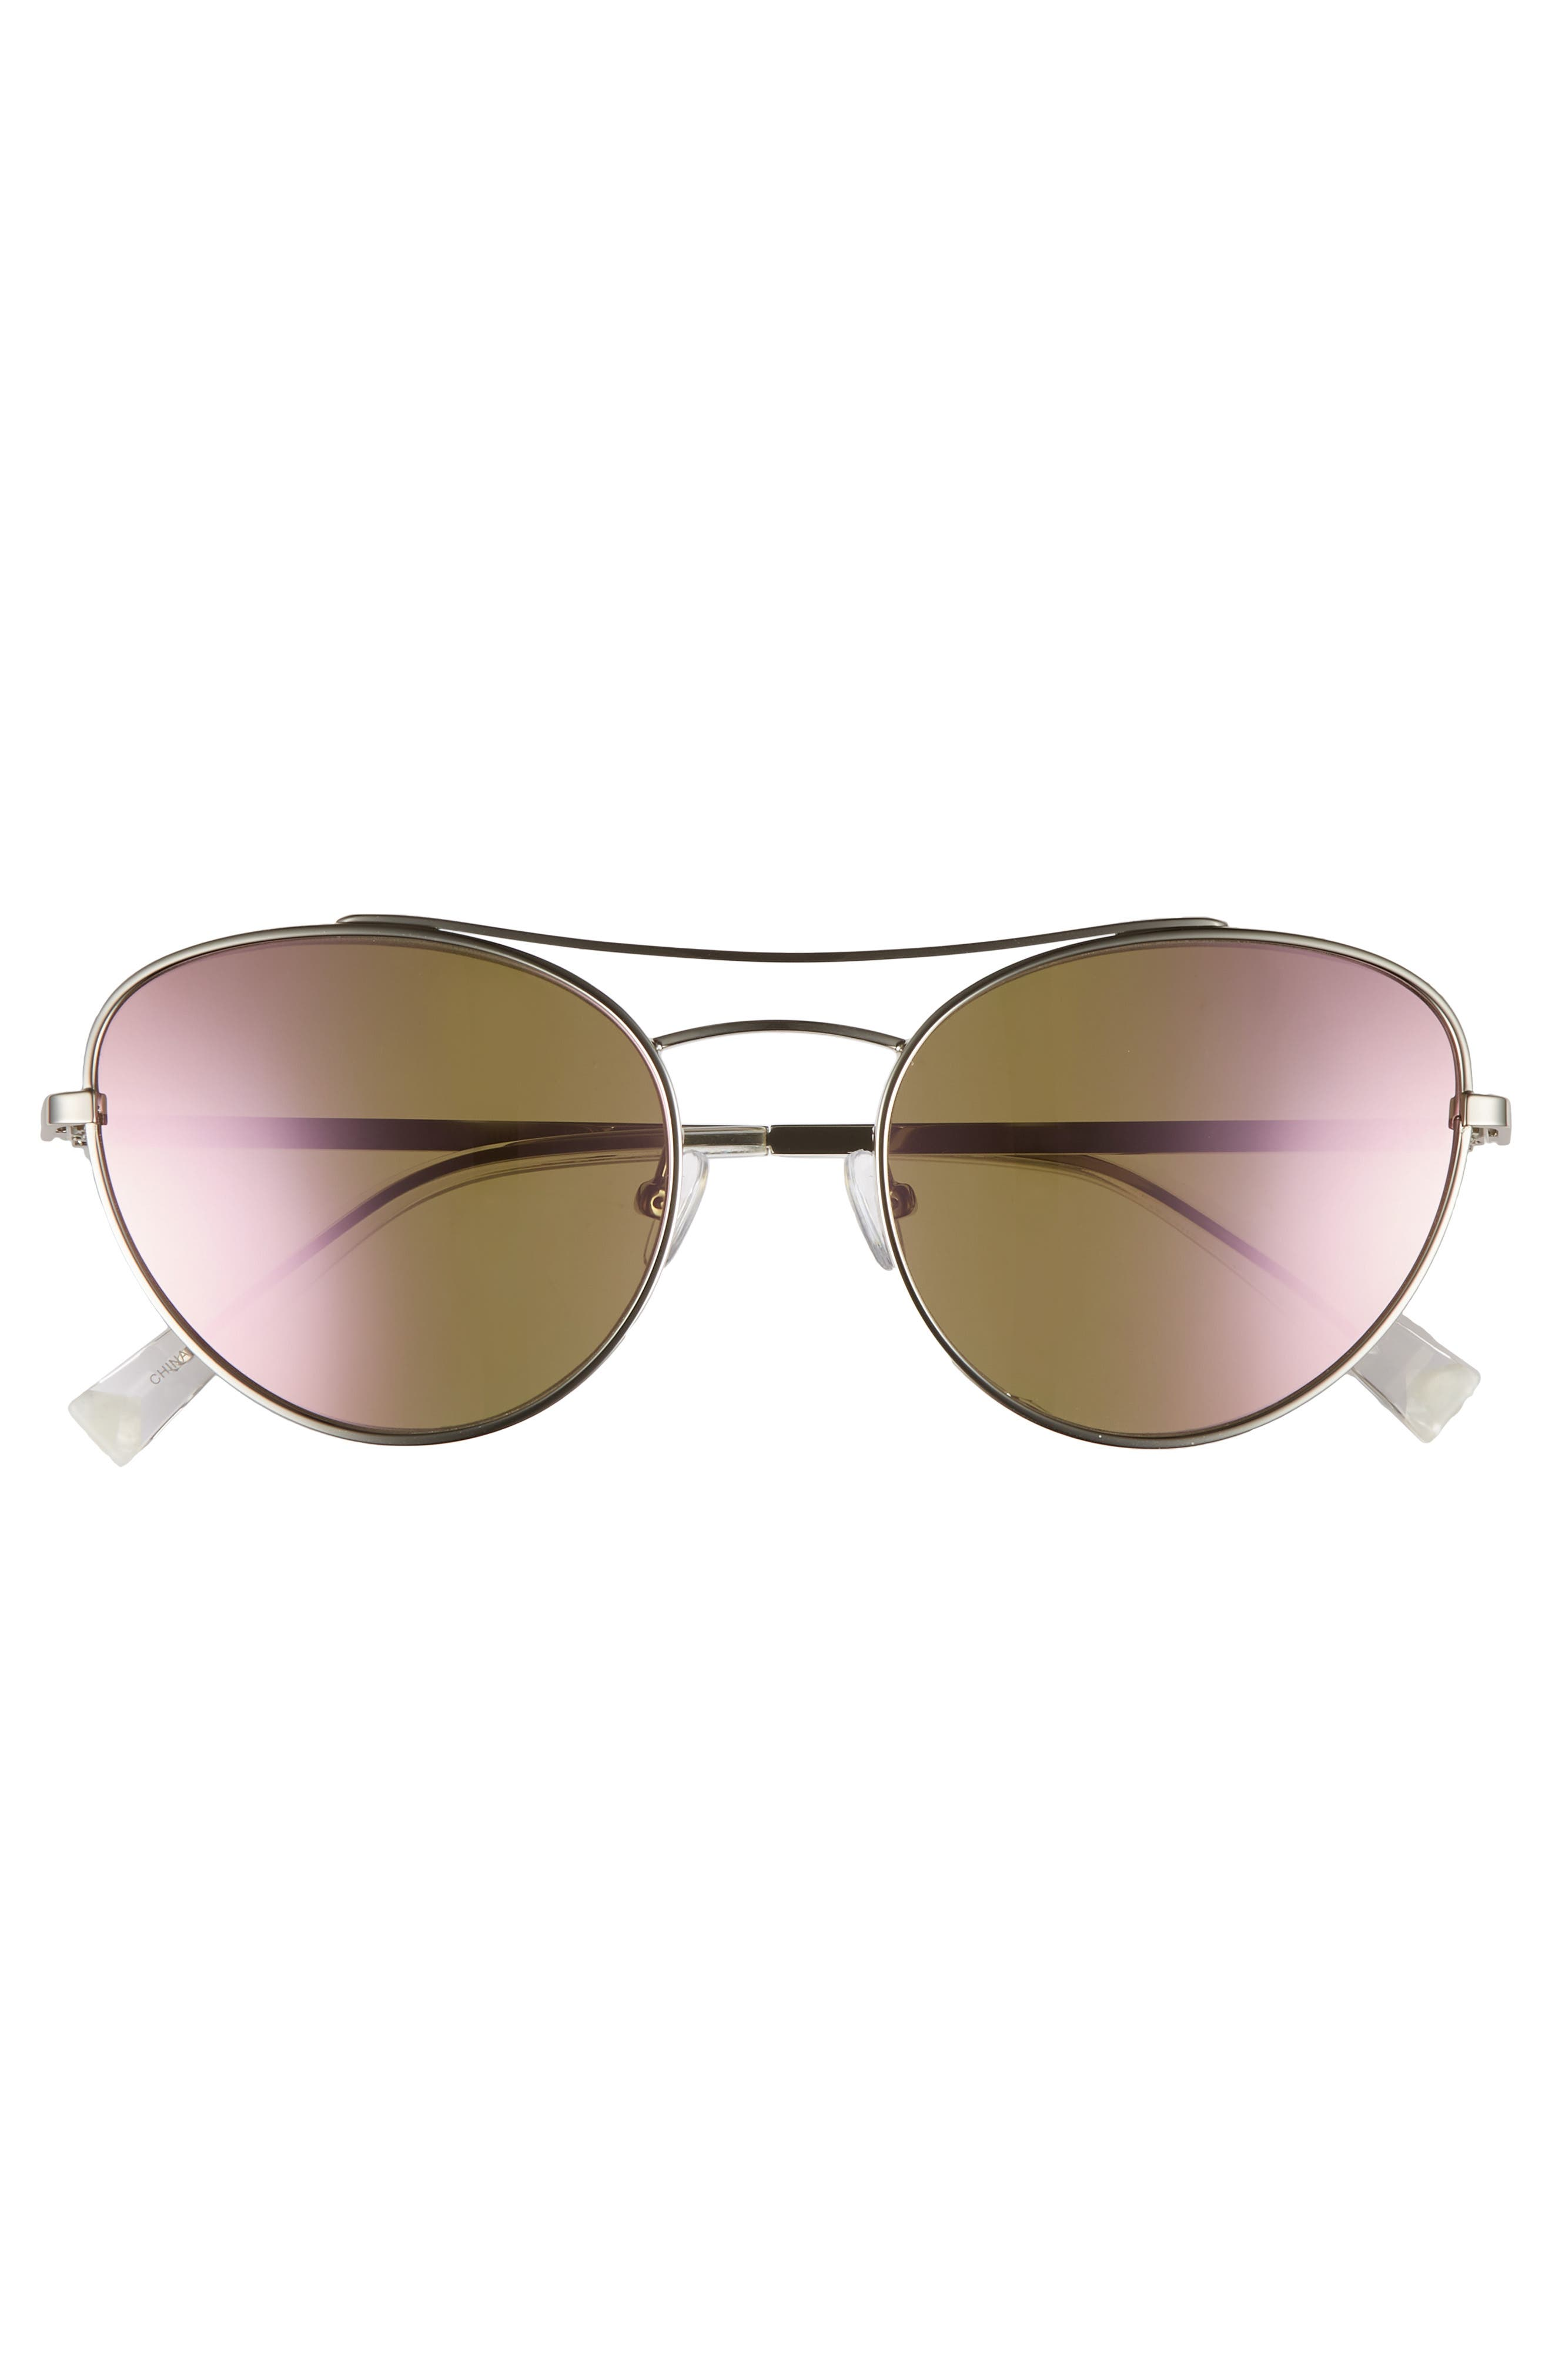 Yasmin 55mm Aviator Sunglasses,                             Alternate thumbnail 3, color,                             Silver/ Rose Gold Mirror